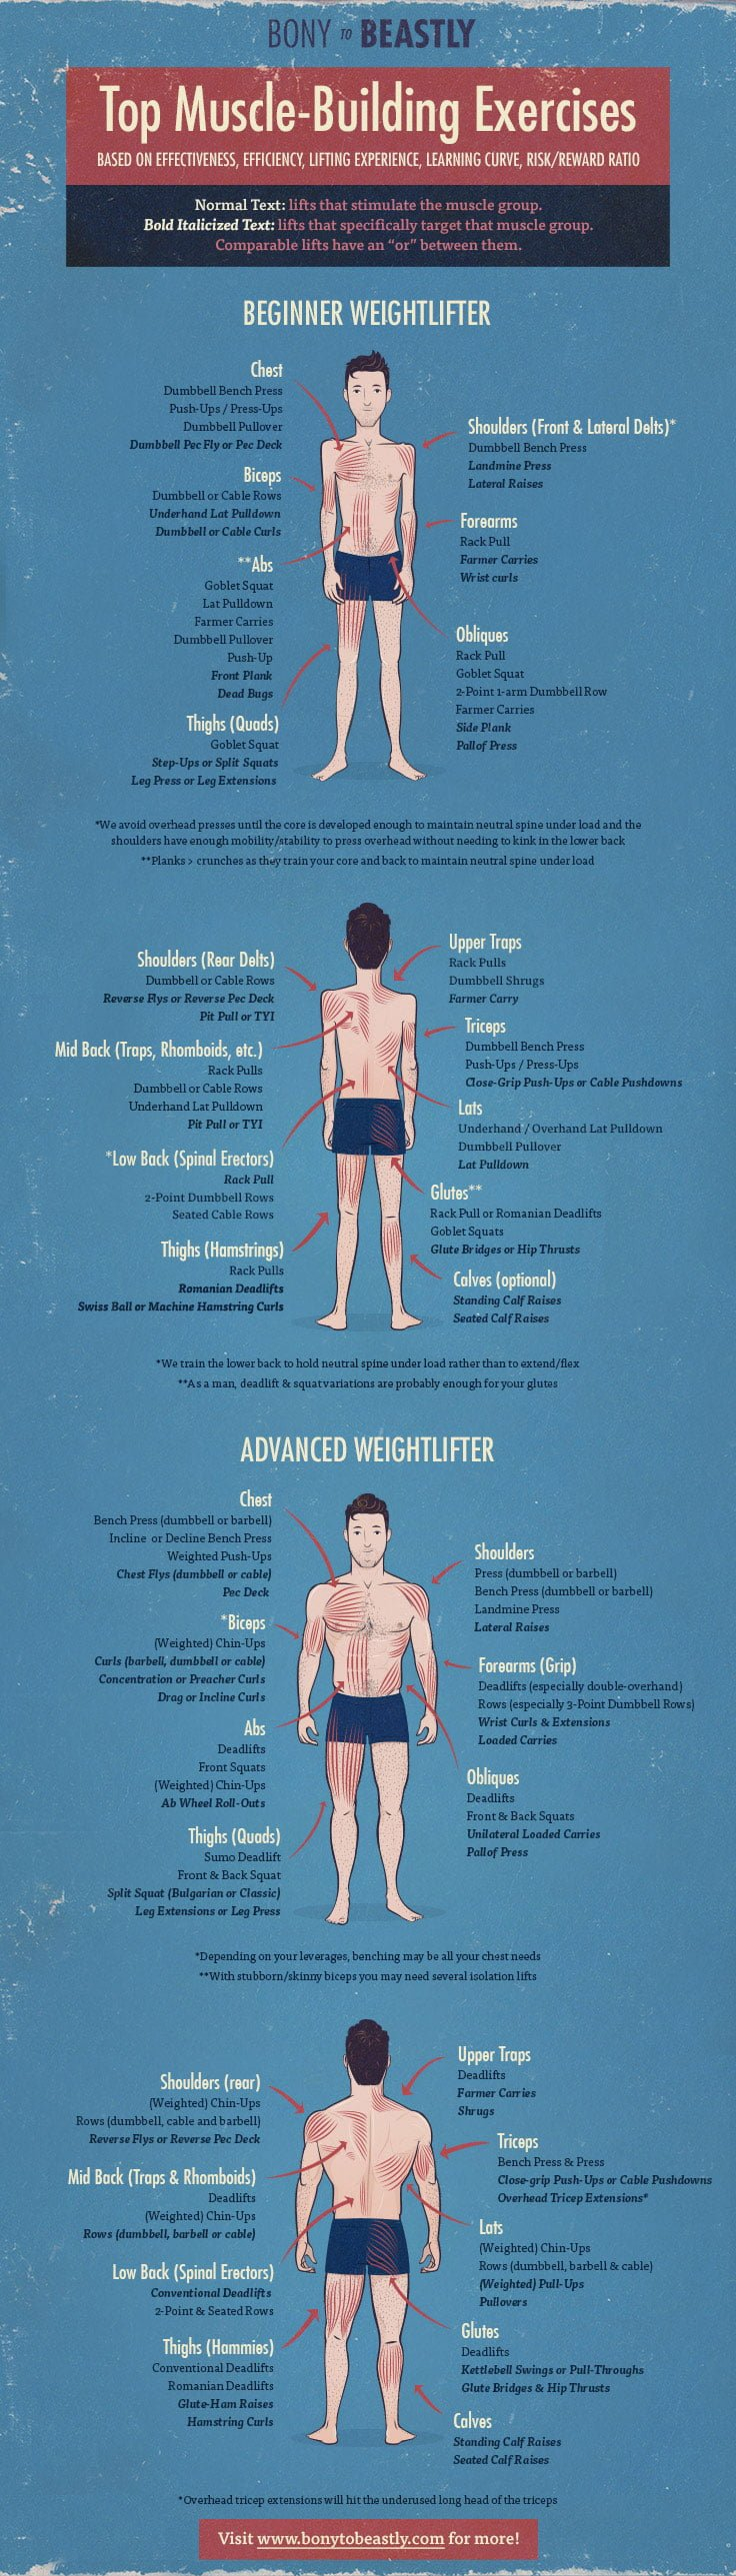 From Bone to Brawn: How Long Does It Take to Build Muscle? - Infographic